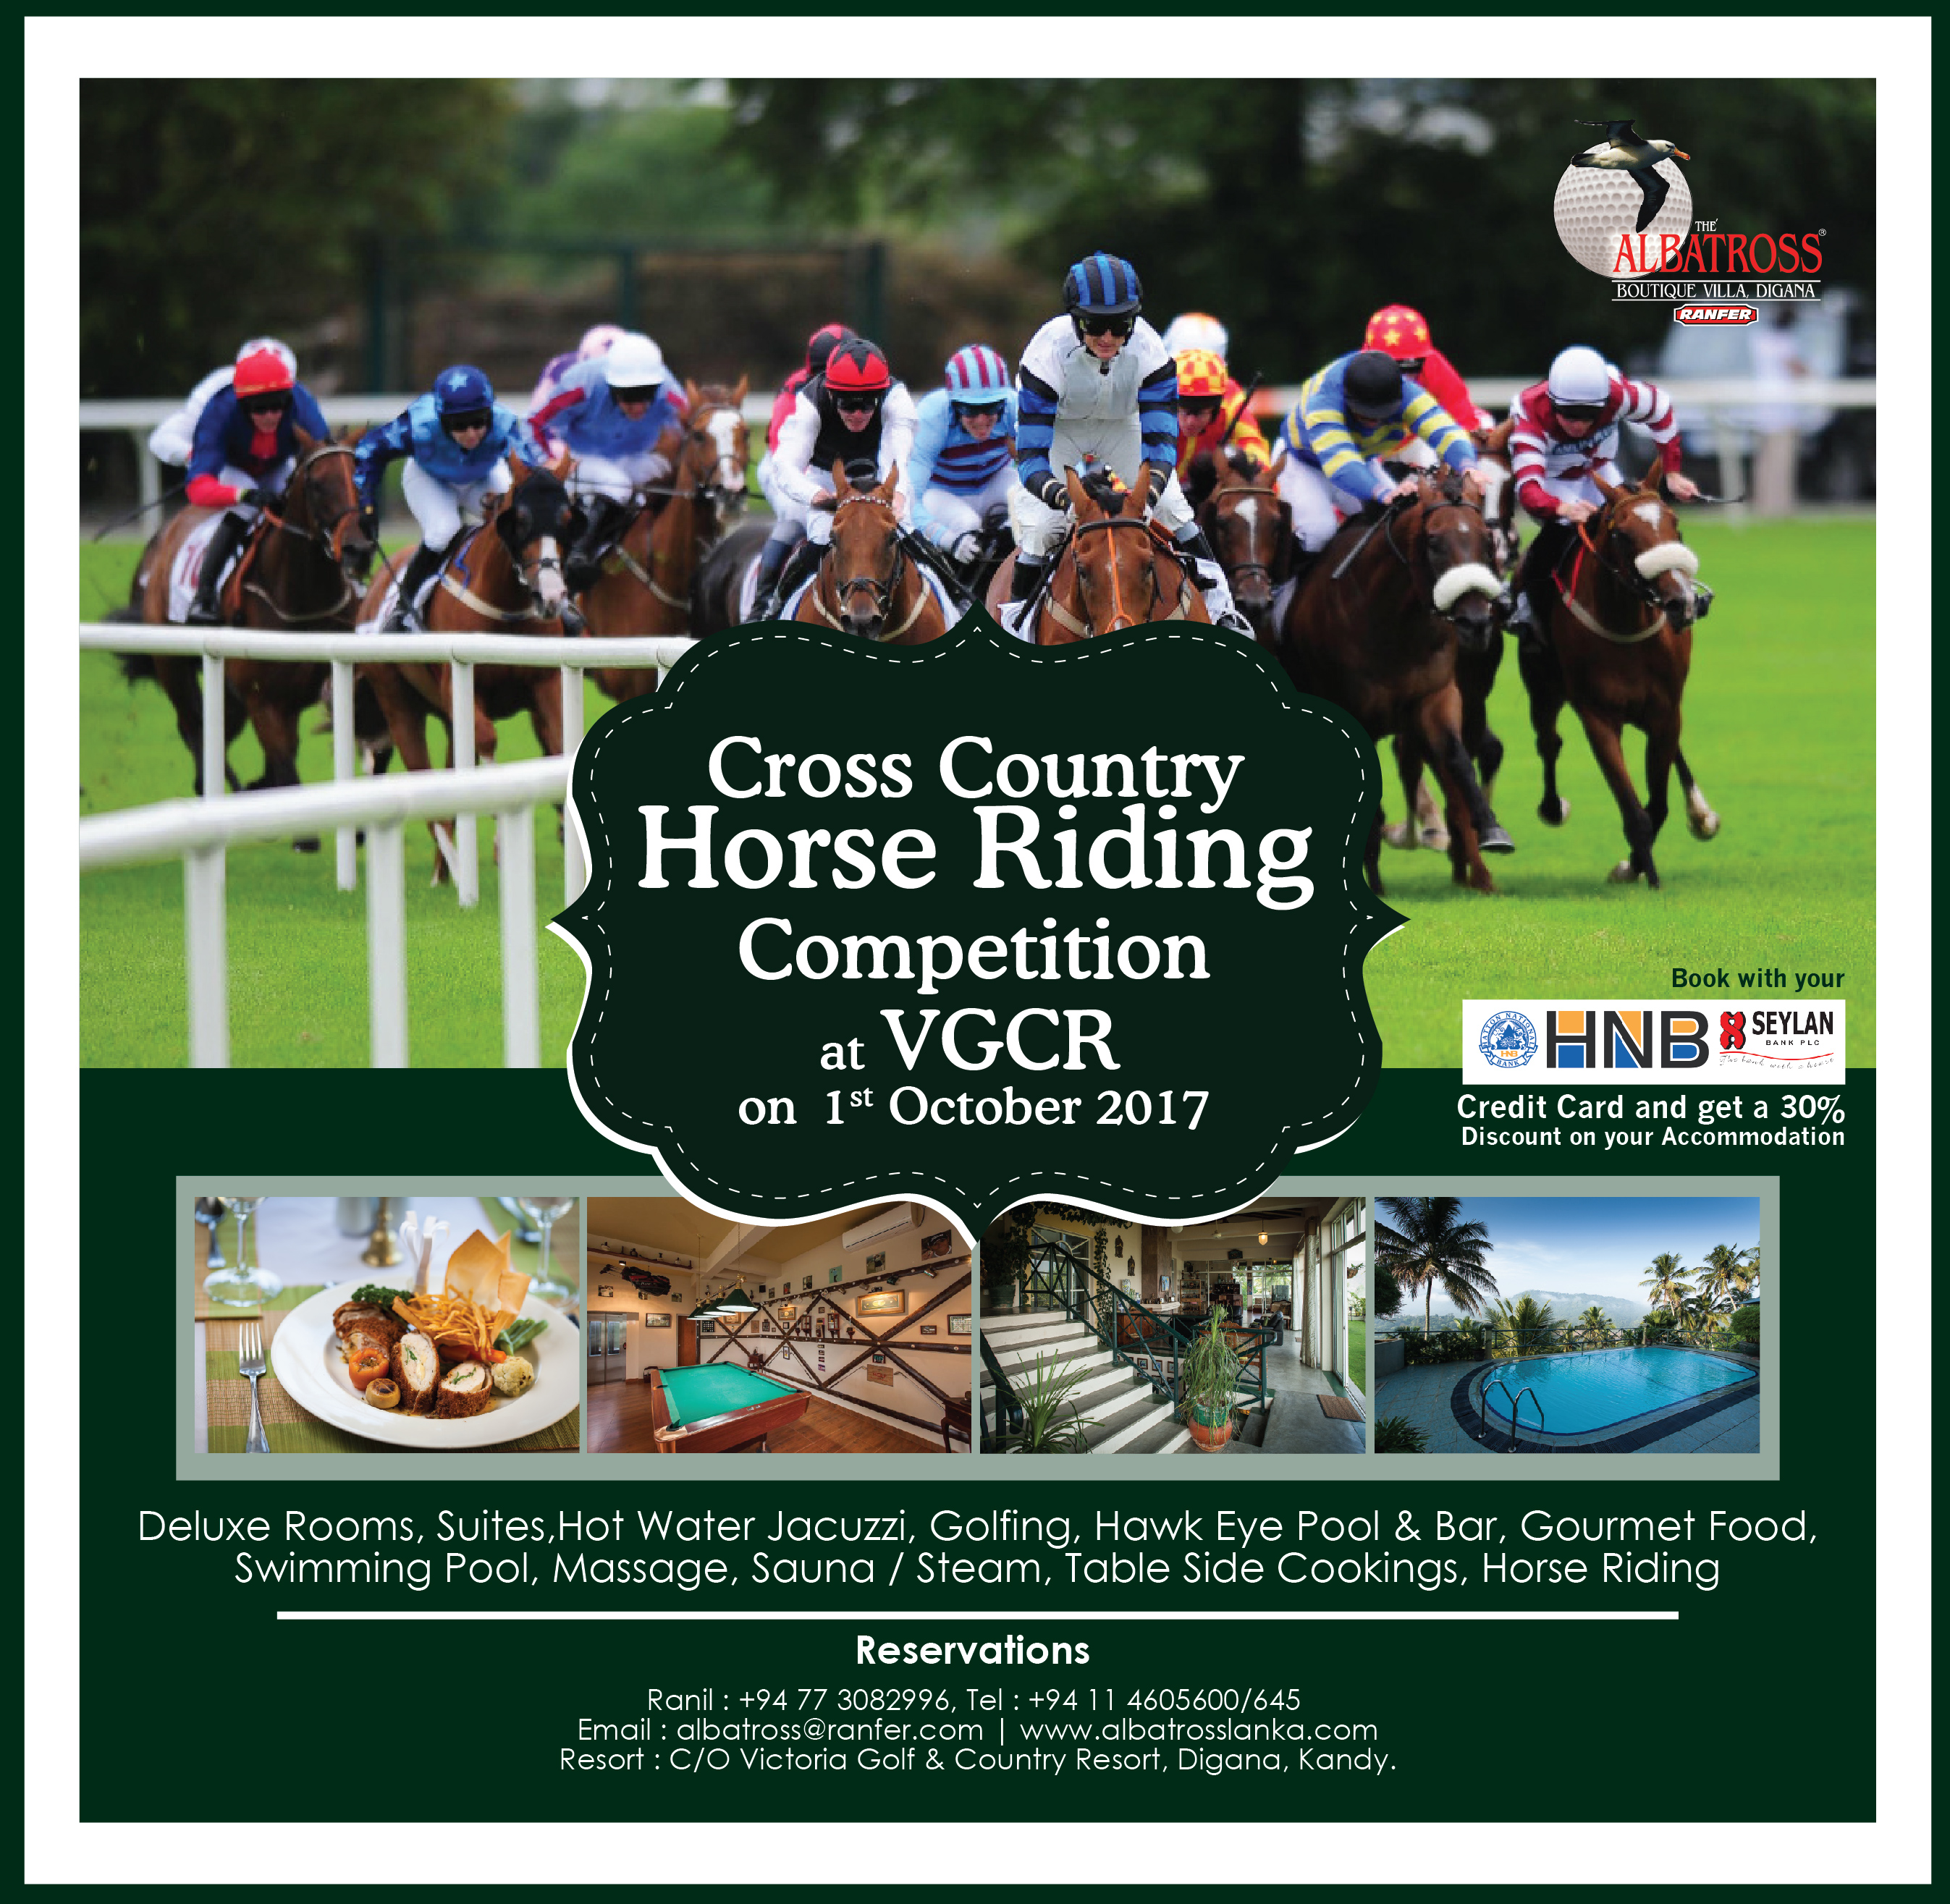 Cross Country Horse Riding Competition